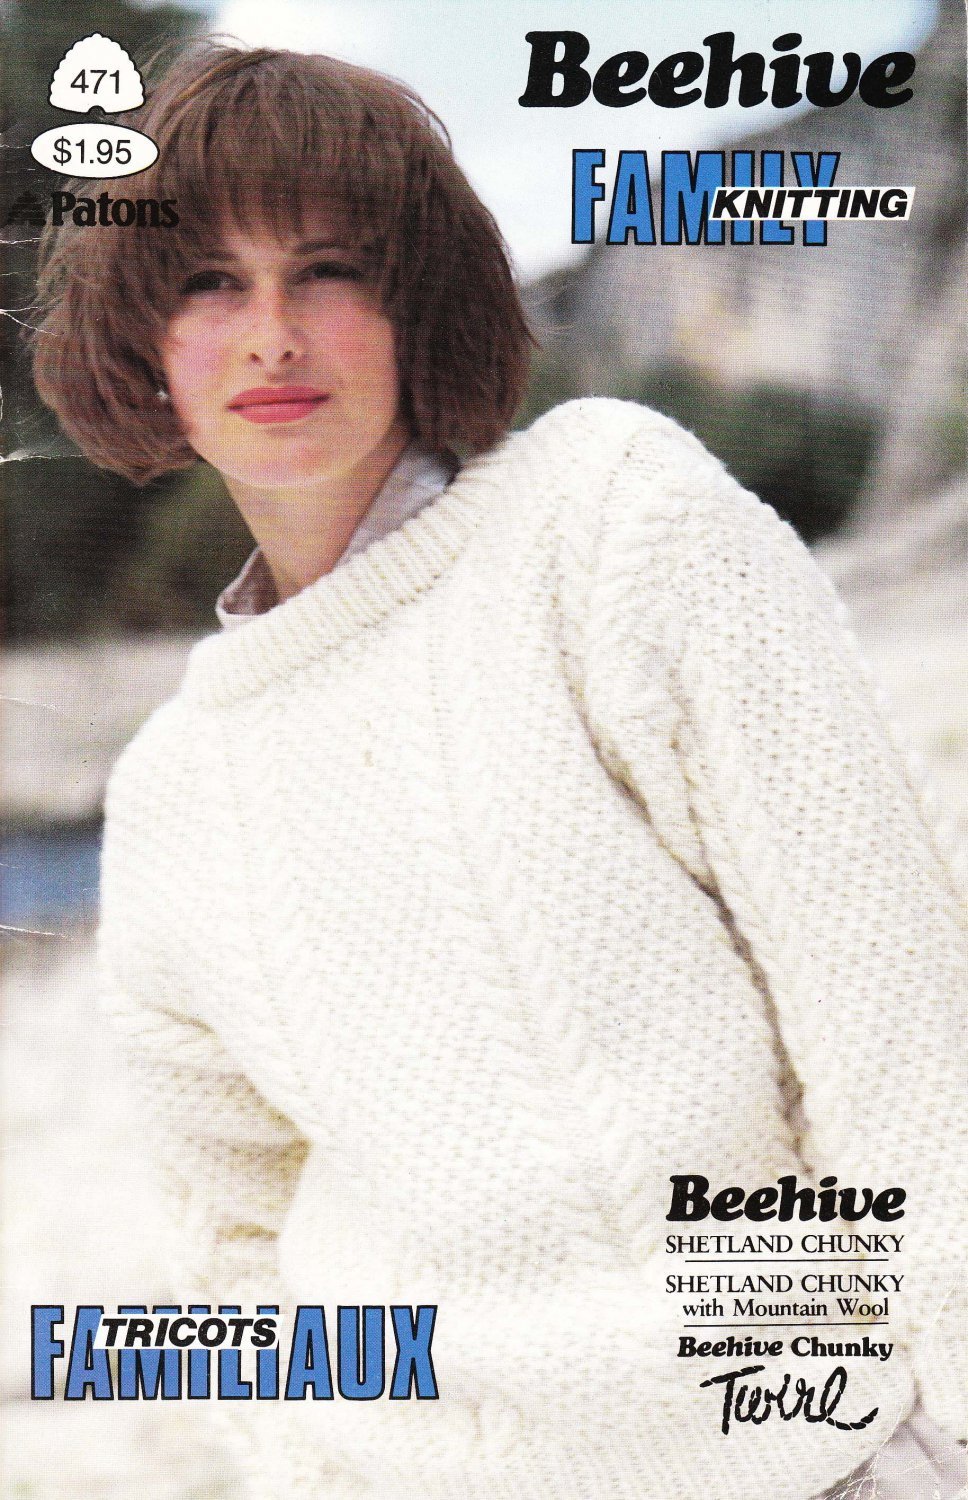 Patons Beehive 1985 Knitting Pattern Booklet #471 Family Knitting